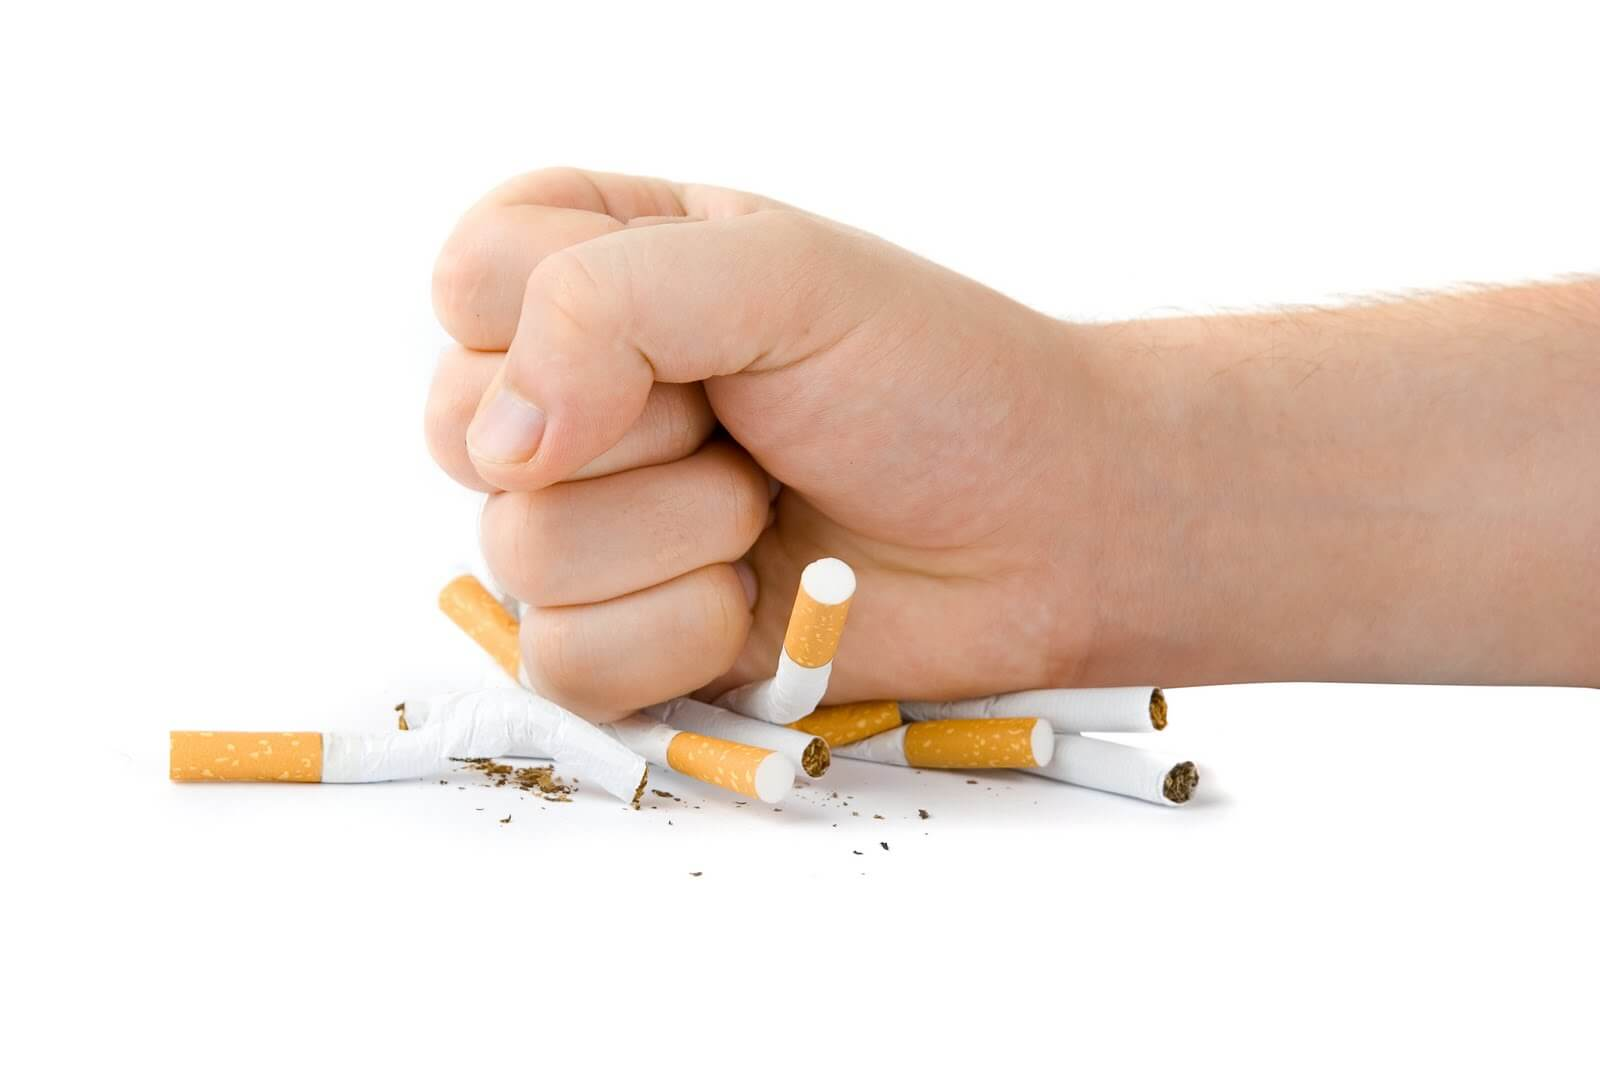 the benefits of banning public cigarette smoking The reduction in heart attacks associated with public smoking bans is a big deal, said steven schroeder, md, director, smoking cessation leadership center university of california, san francisco.